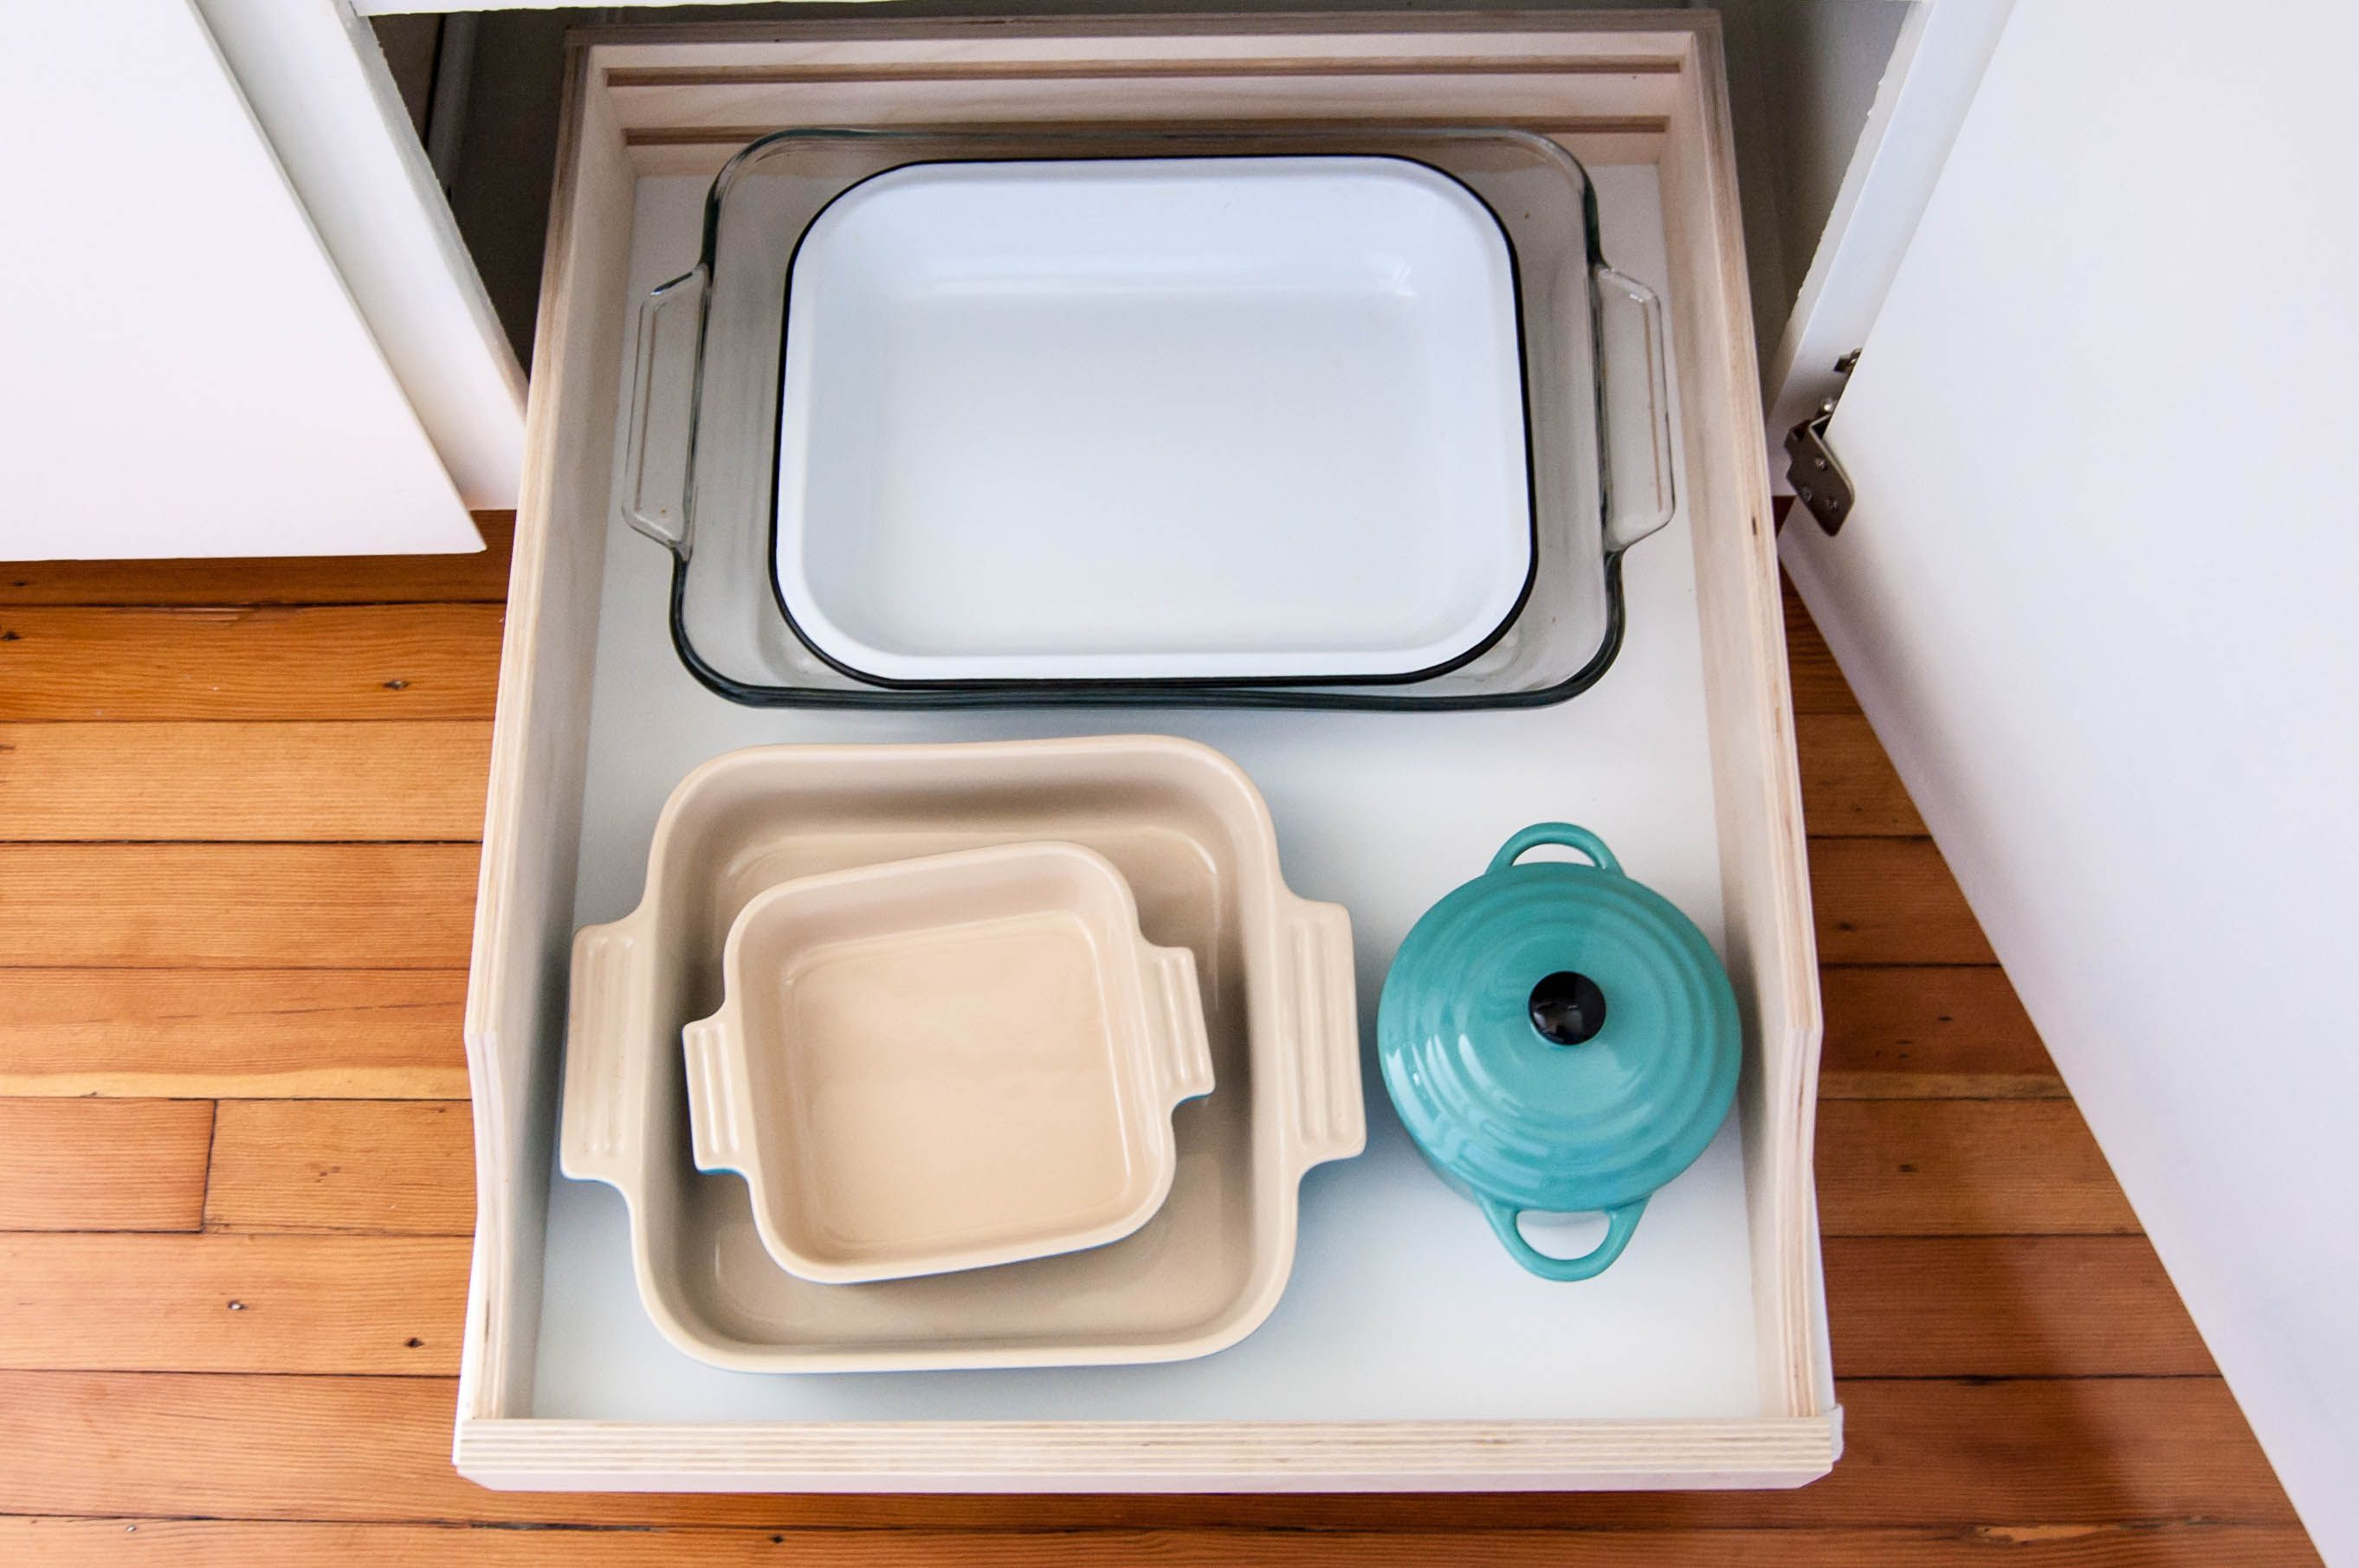 These Cabinet Hacks Seriously Increased My Kitchen Storage   Carpinteria